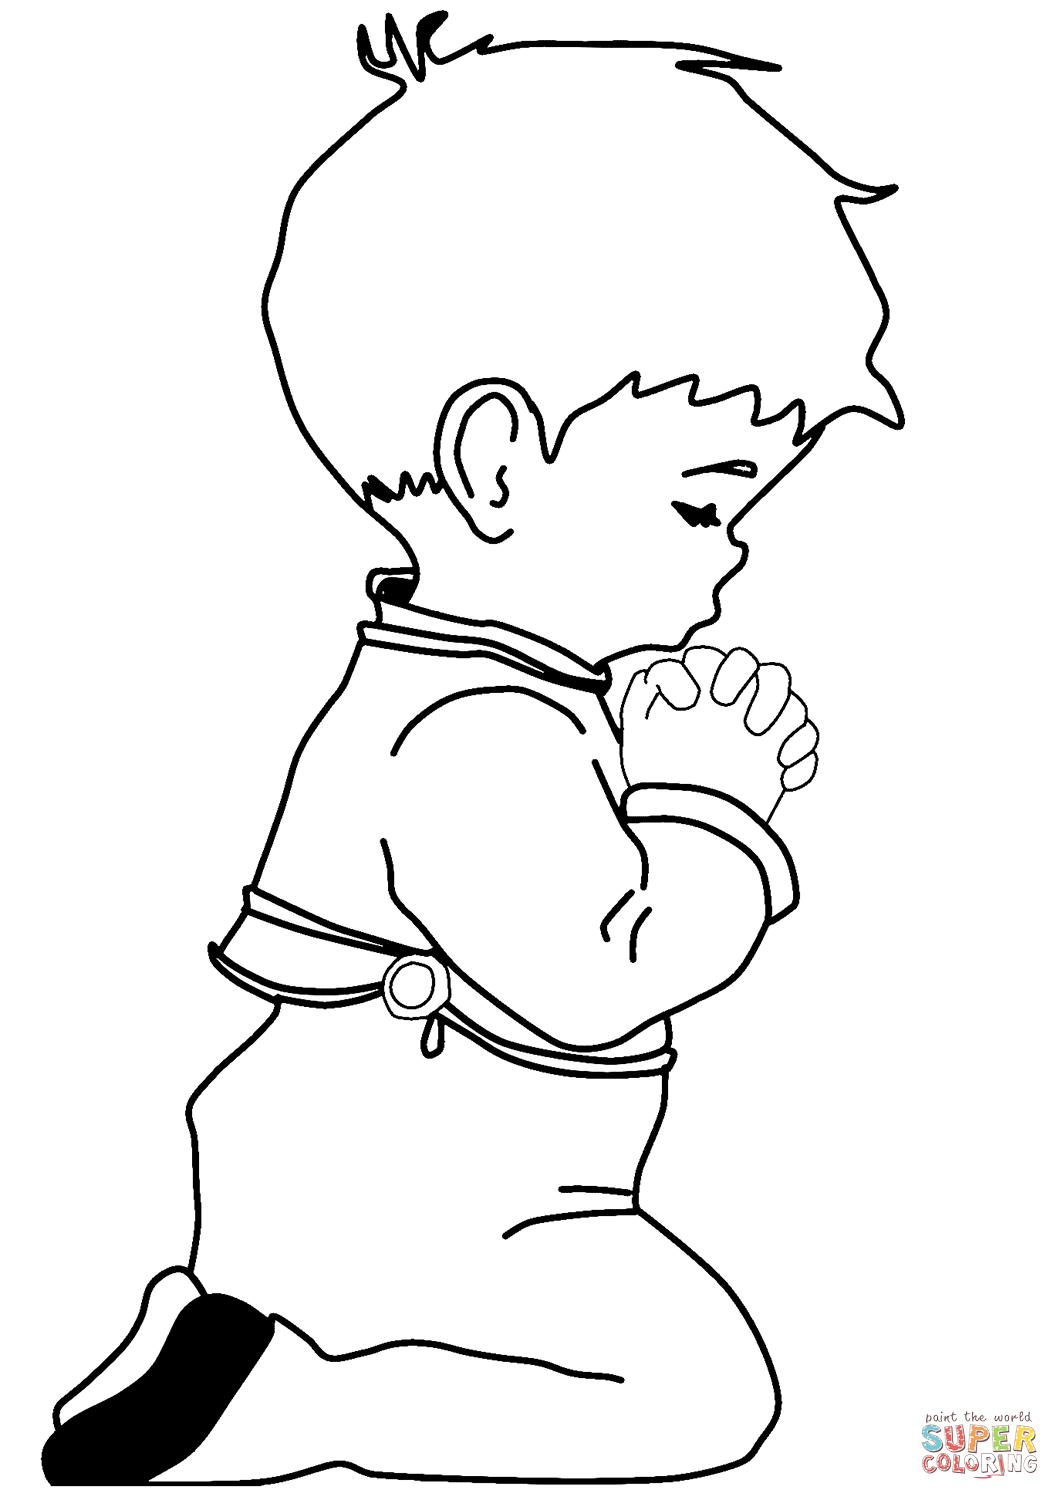 1060x1500 Praying Little Boy Coloring Page Free Printable Coloring Pages